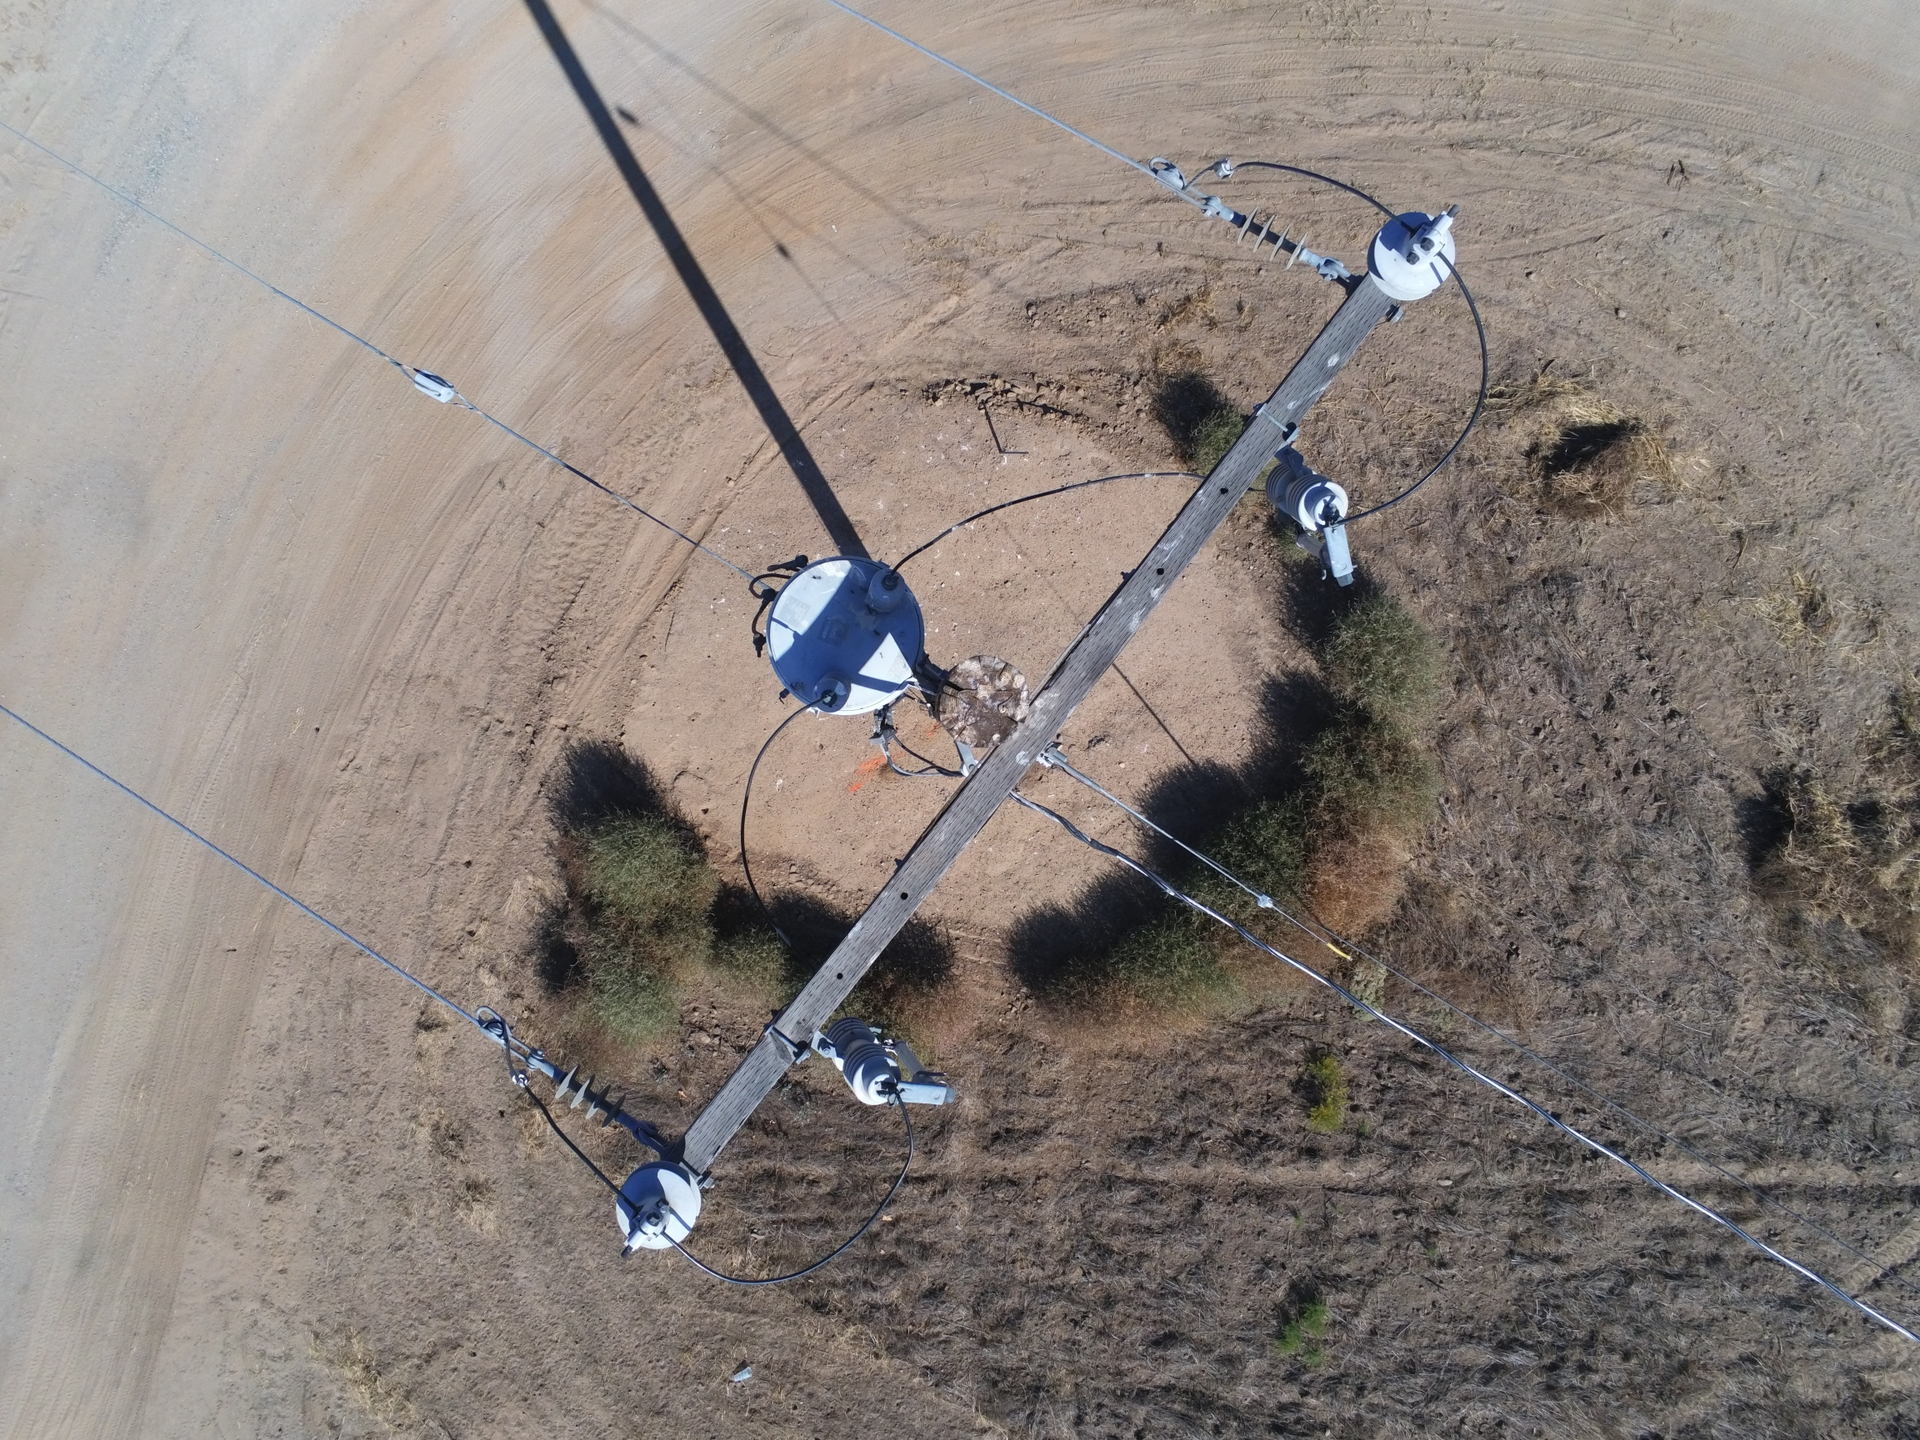 An image taken from a drone of an SCE power pole.